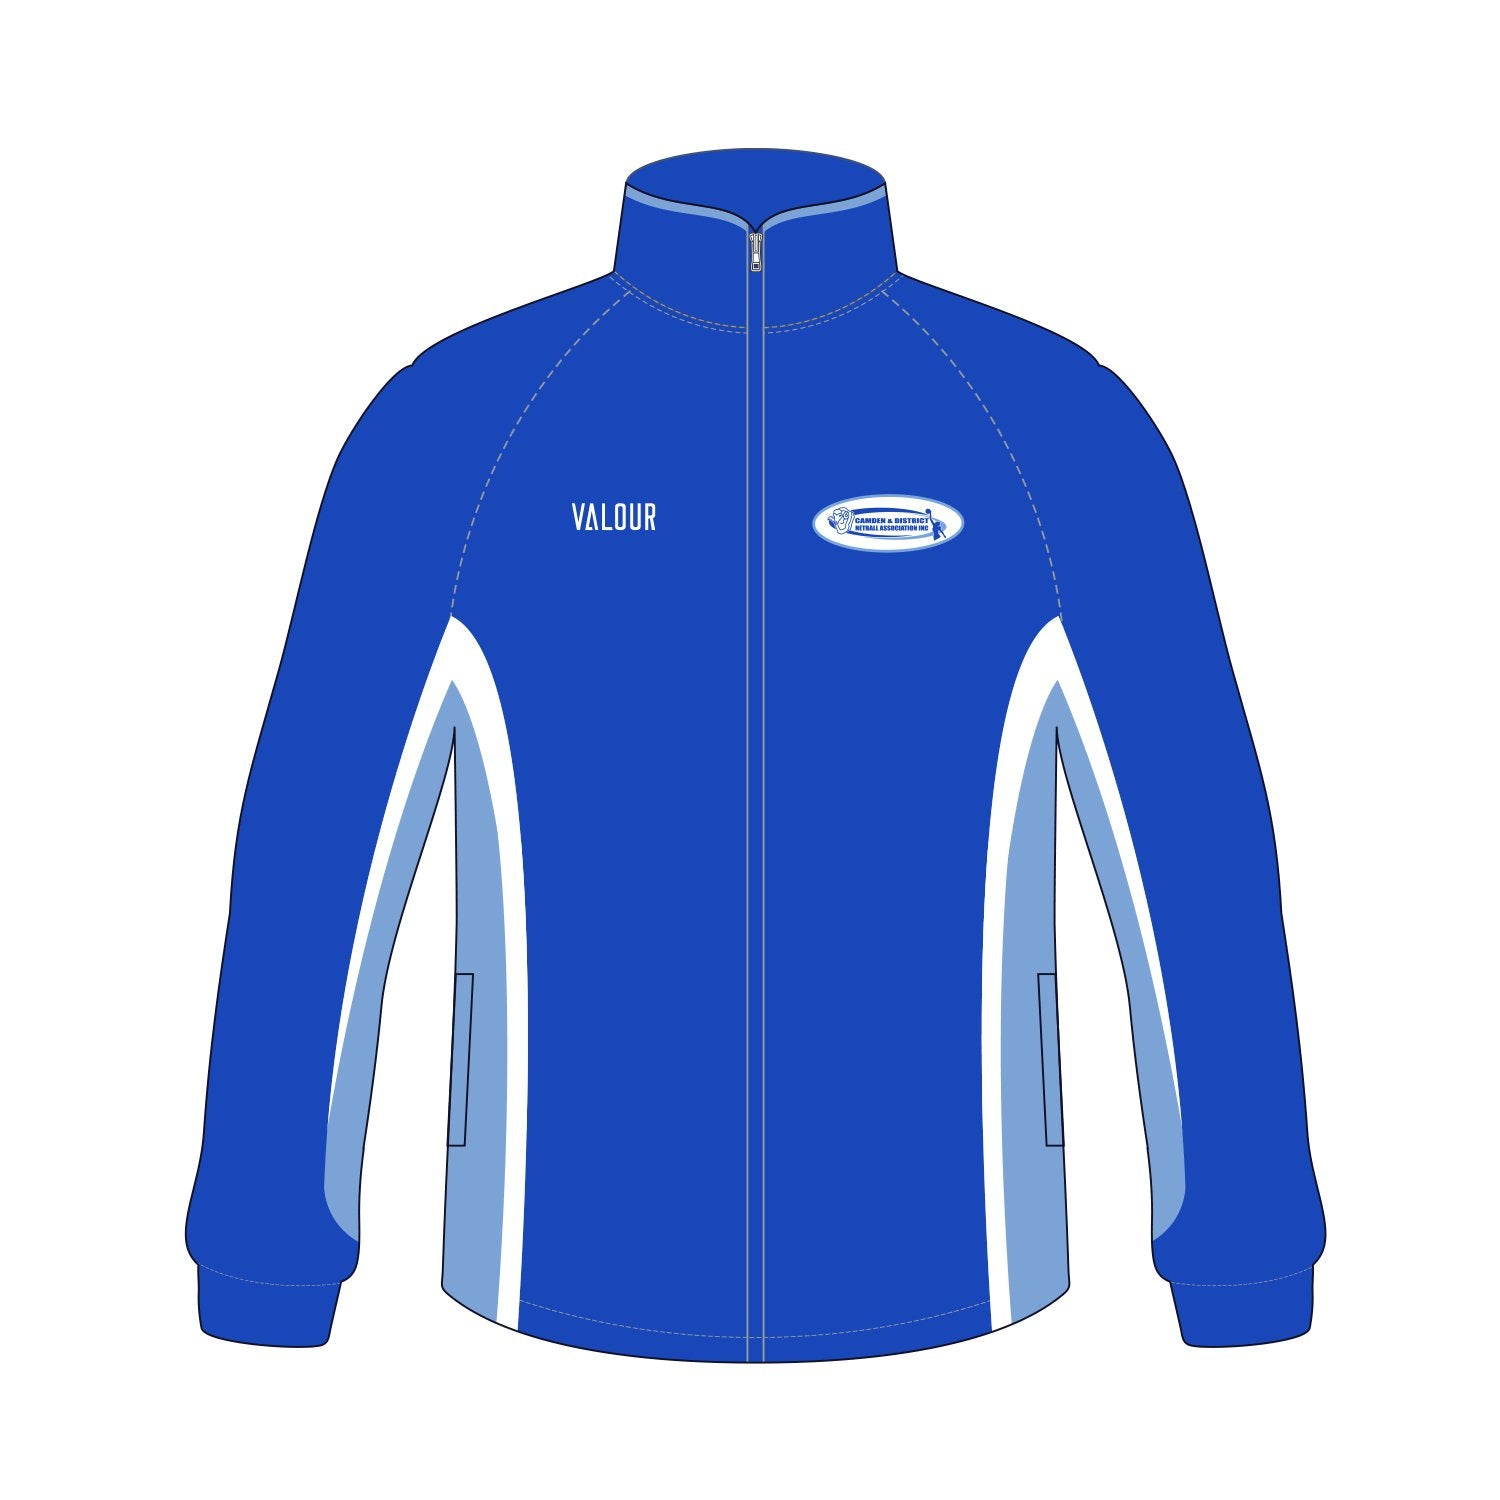 CDNA Representative Track Jacket